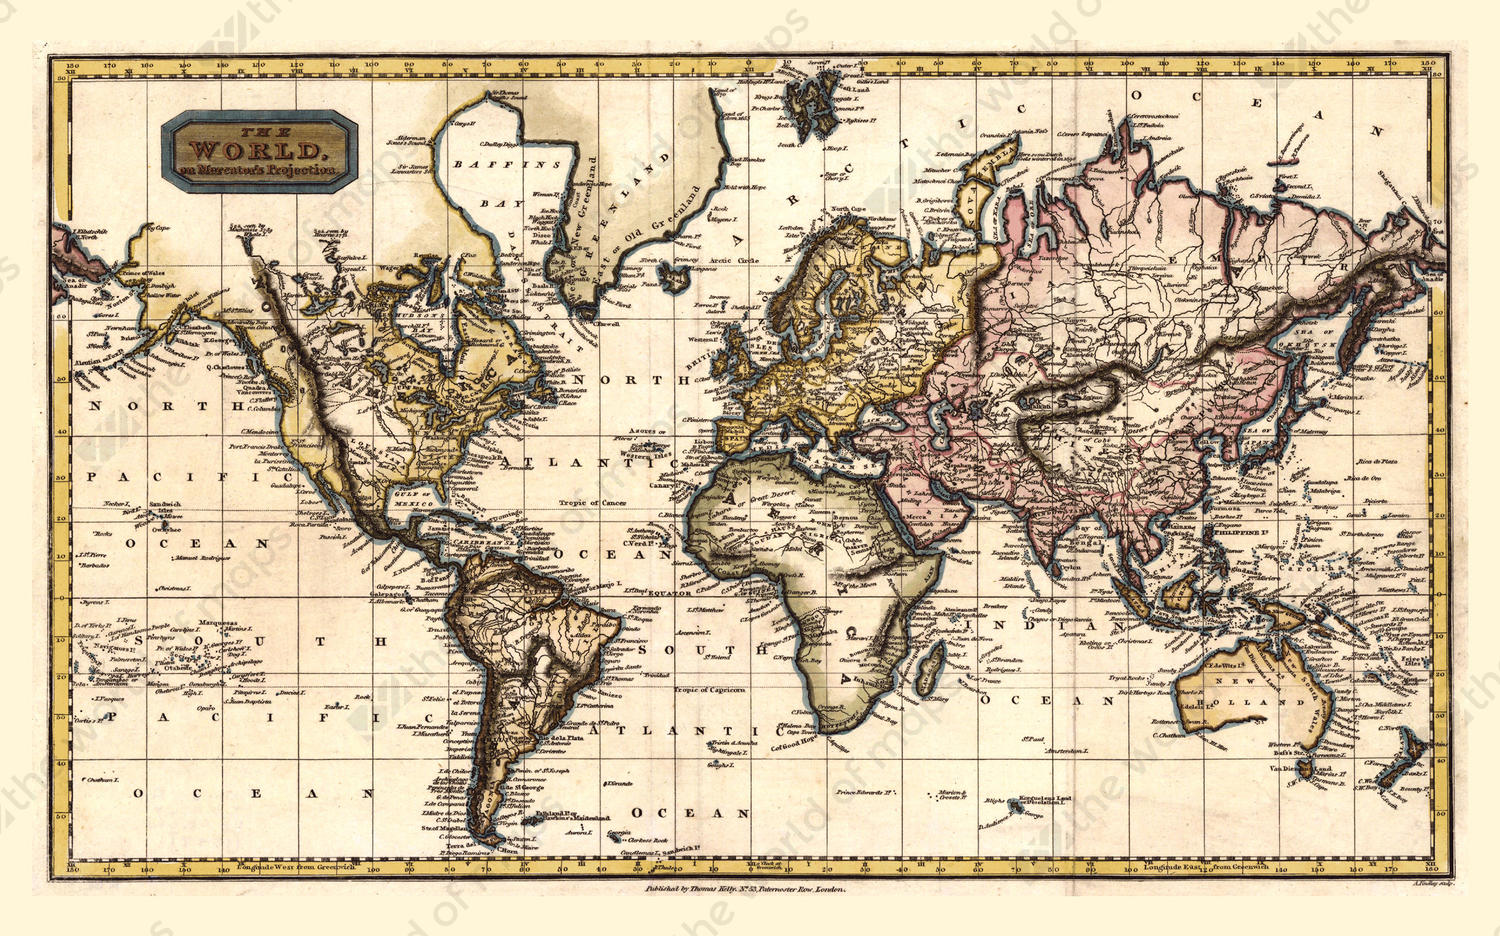 Digital world map year 1798 finley the world of maps digital world map year 1798 finley gumiabroncs Image collections